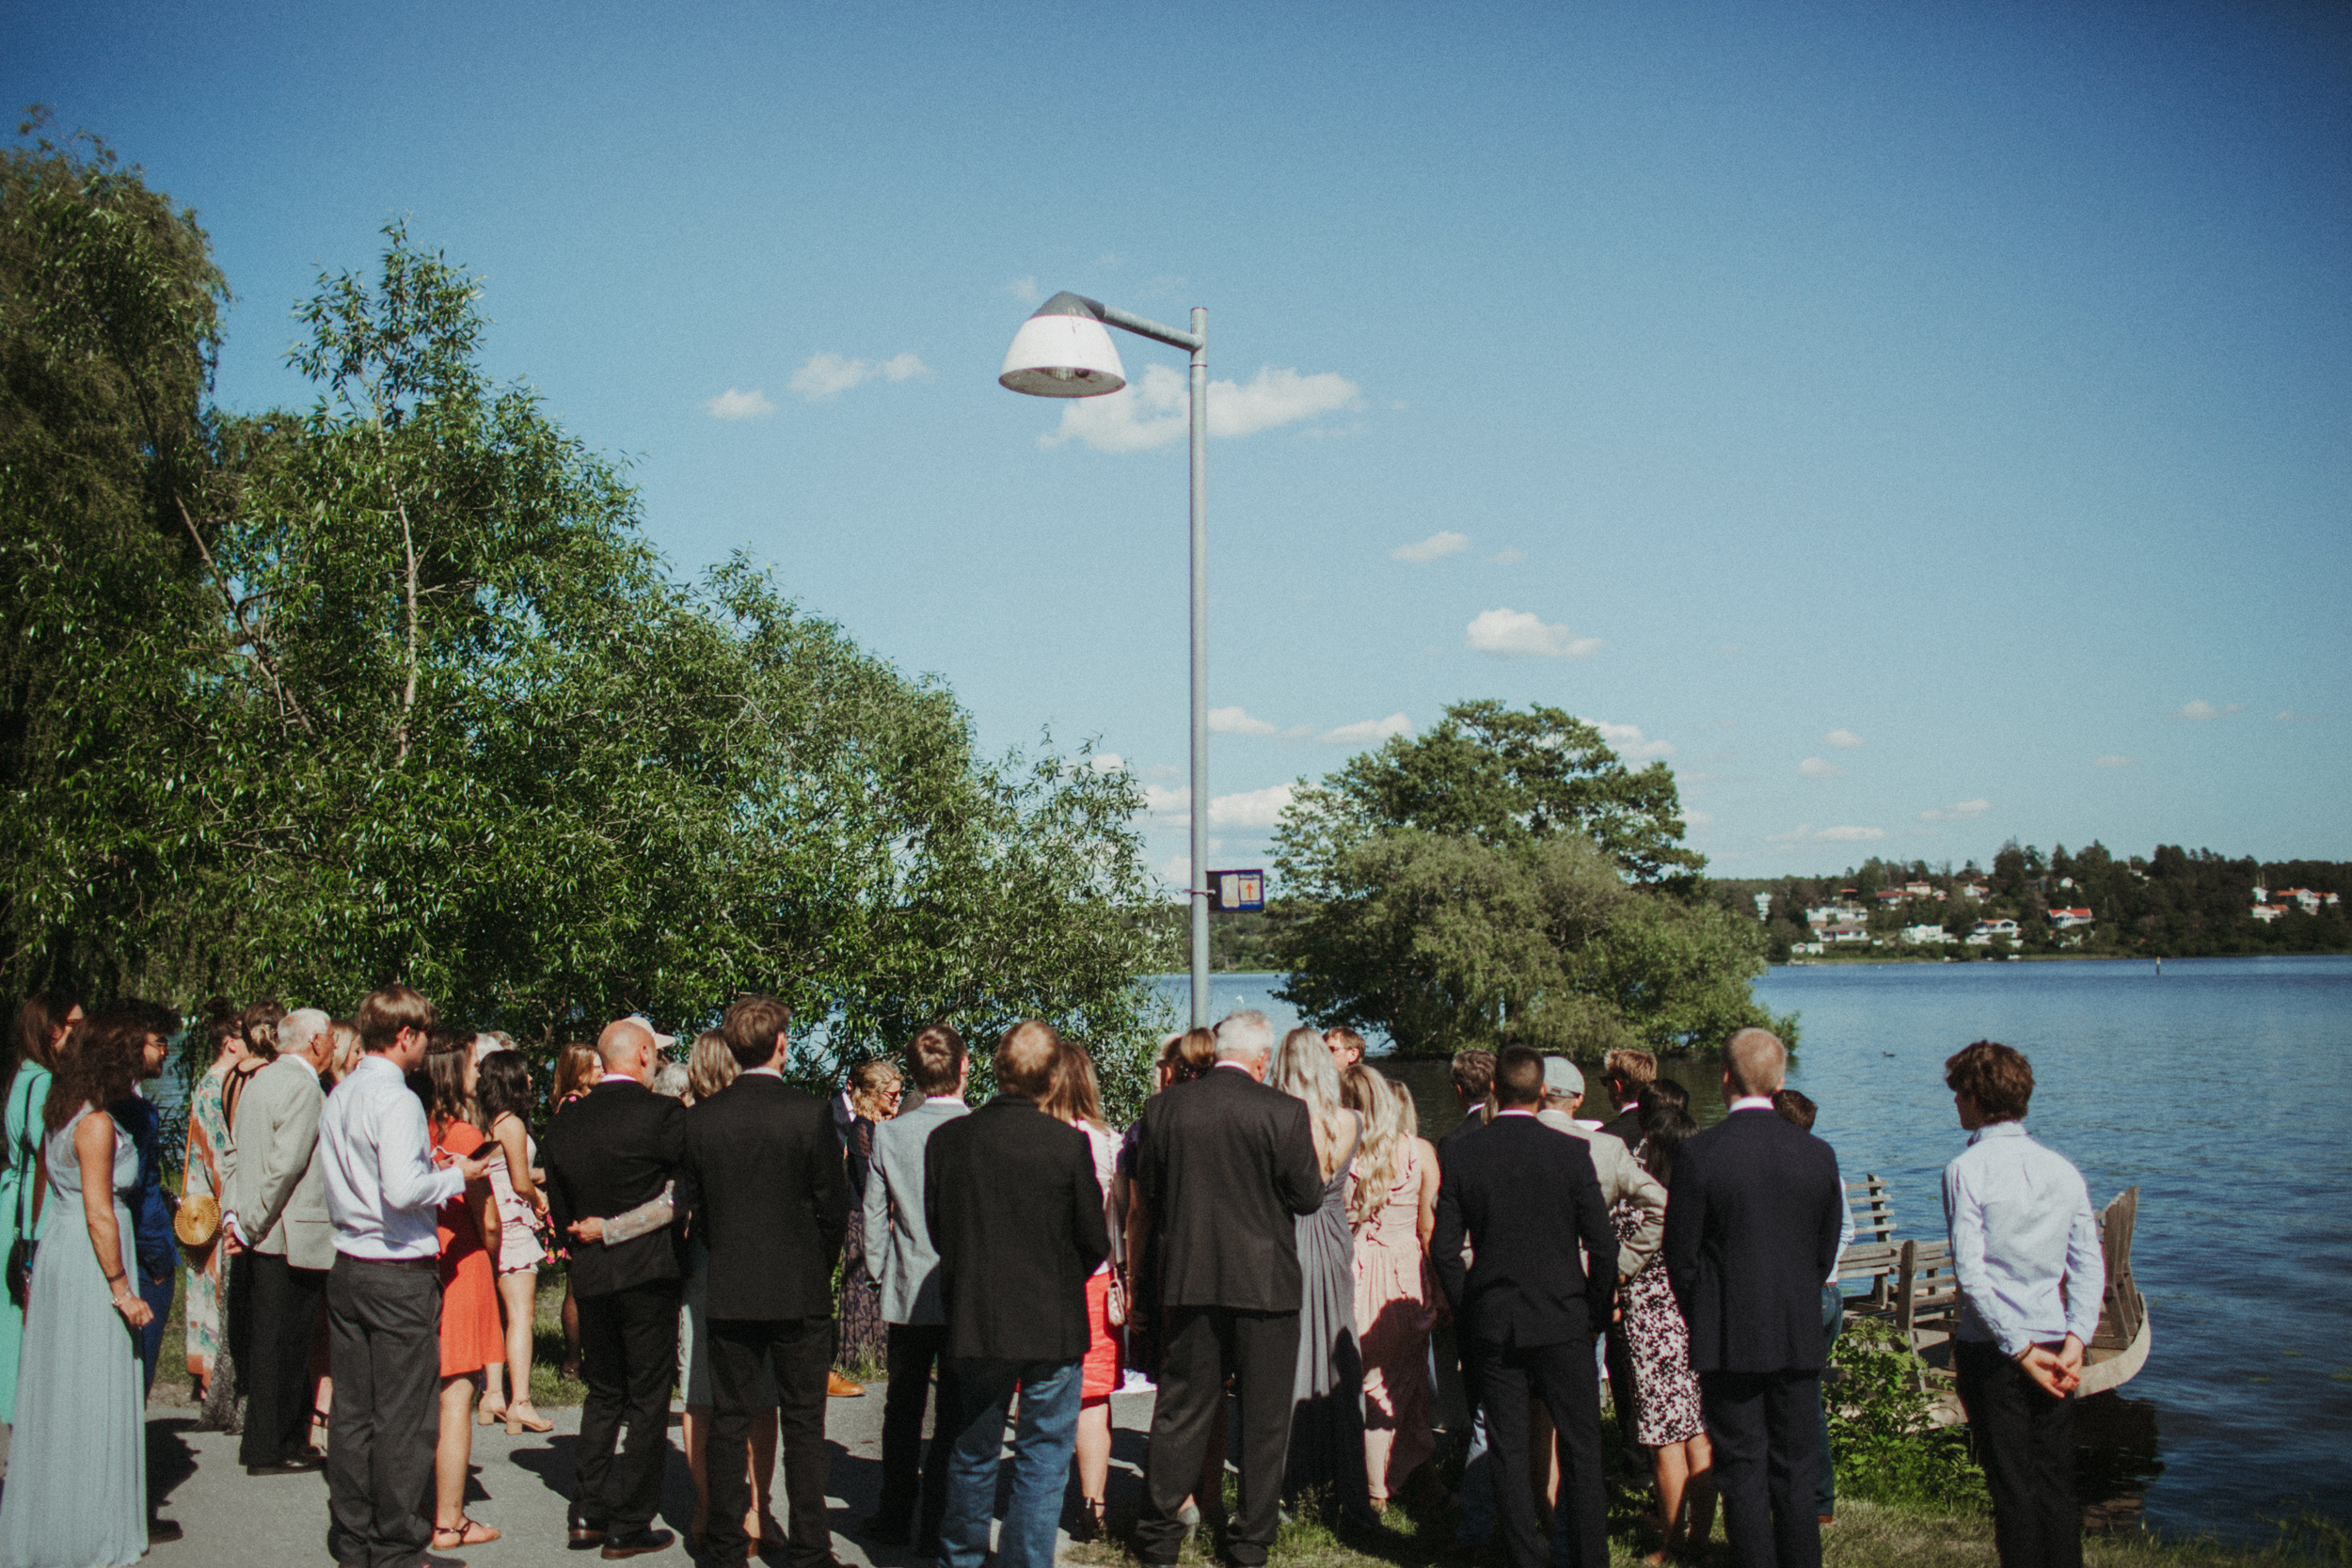 sigtuna-sweden-wedding_m_e-72.jpg